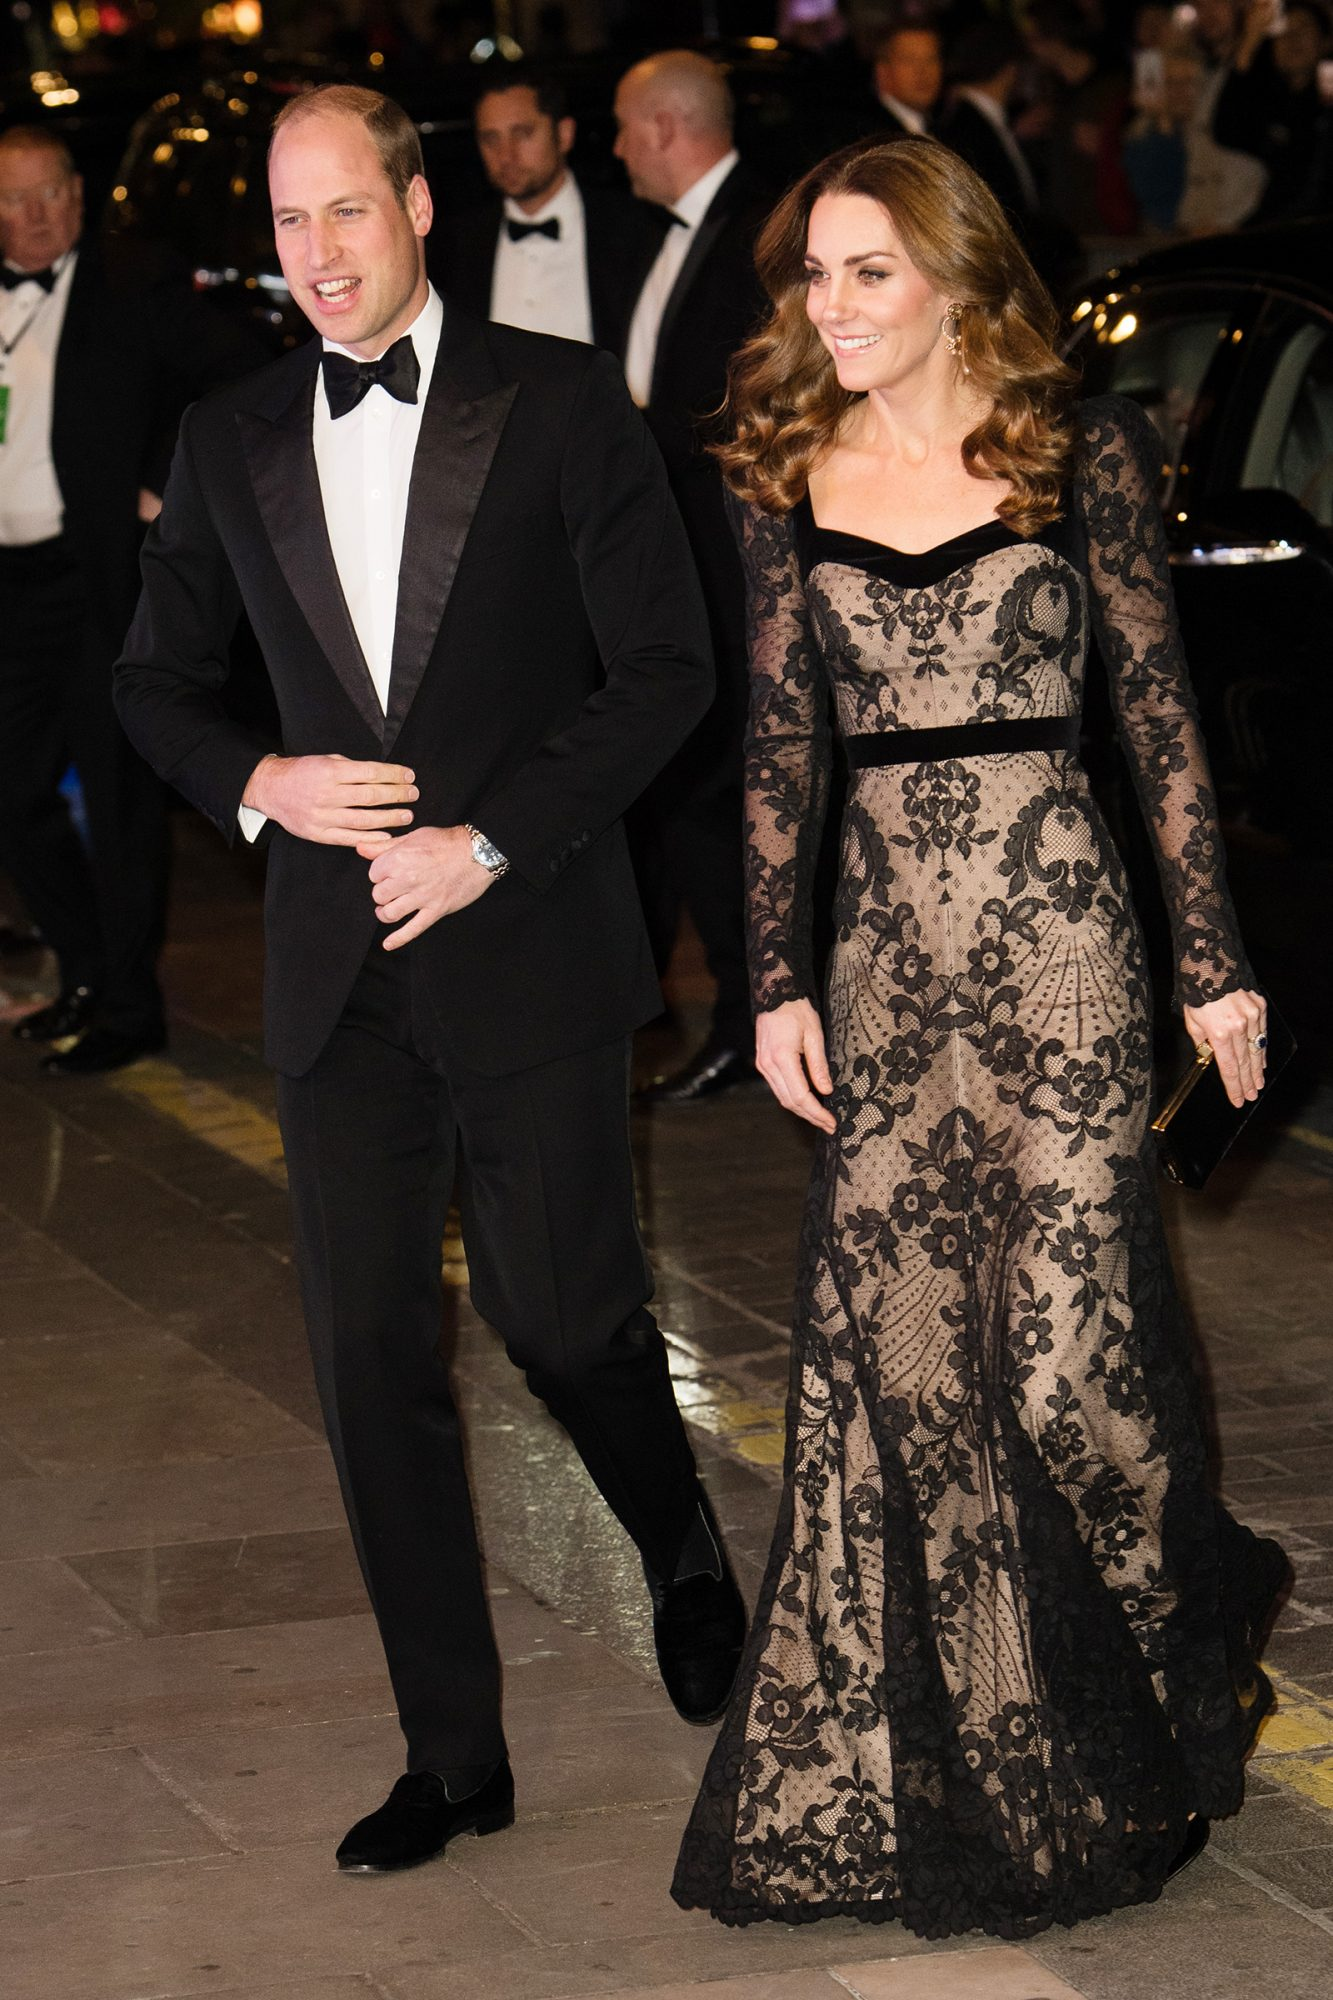 Catherine Duchess of Cambridge and Prince William at The Royal Variety Performance, Arrivals, London Palladium, UK - 18 Nov 2019